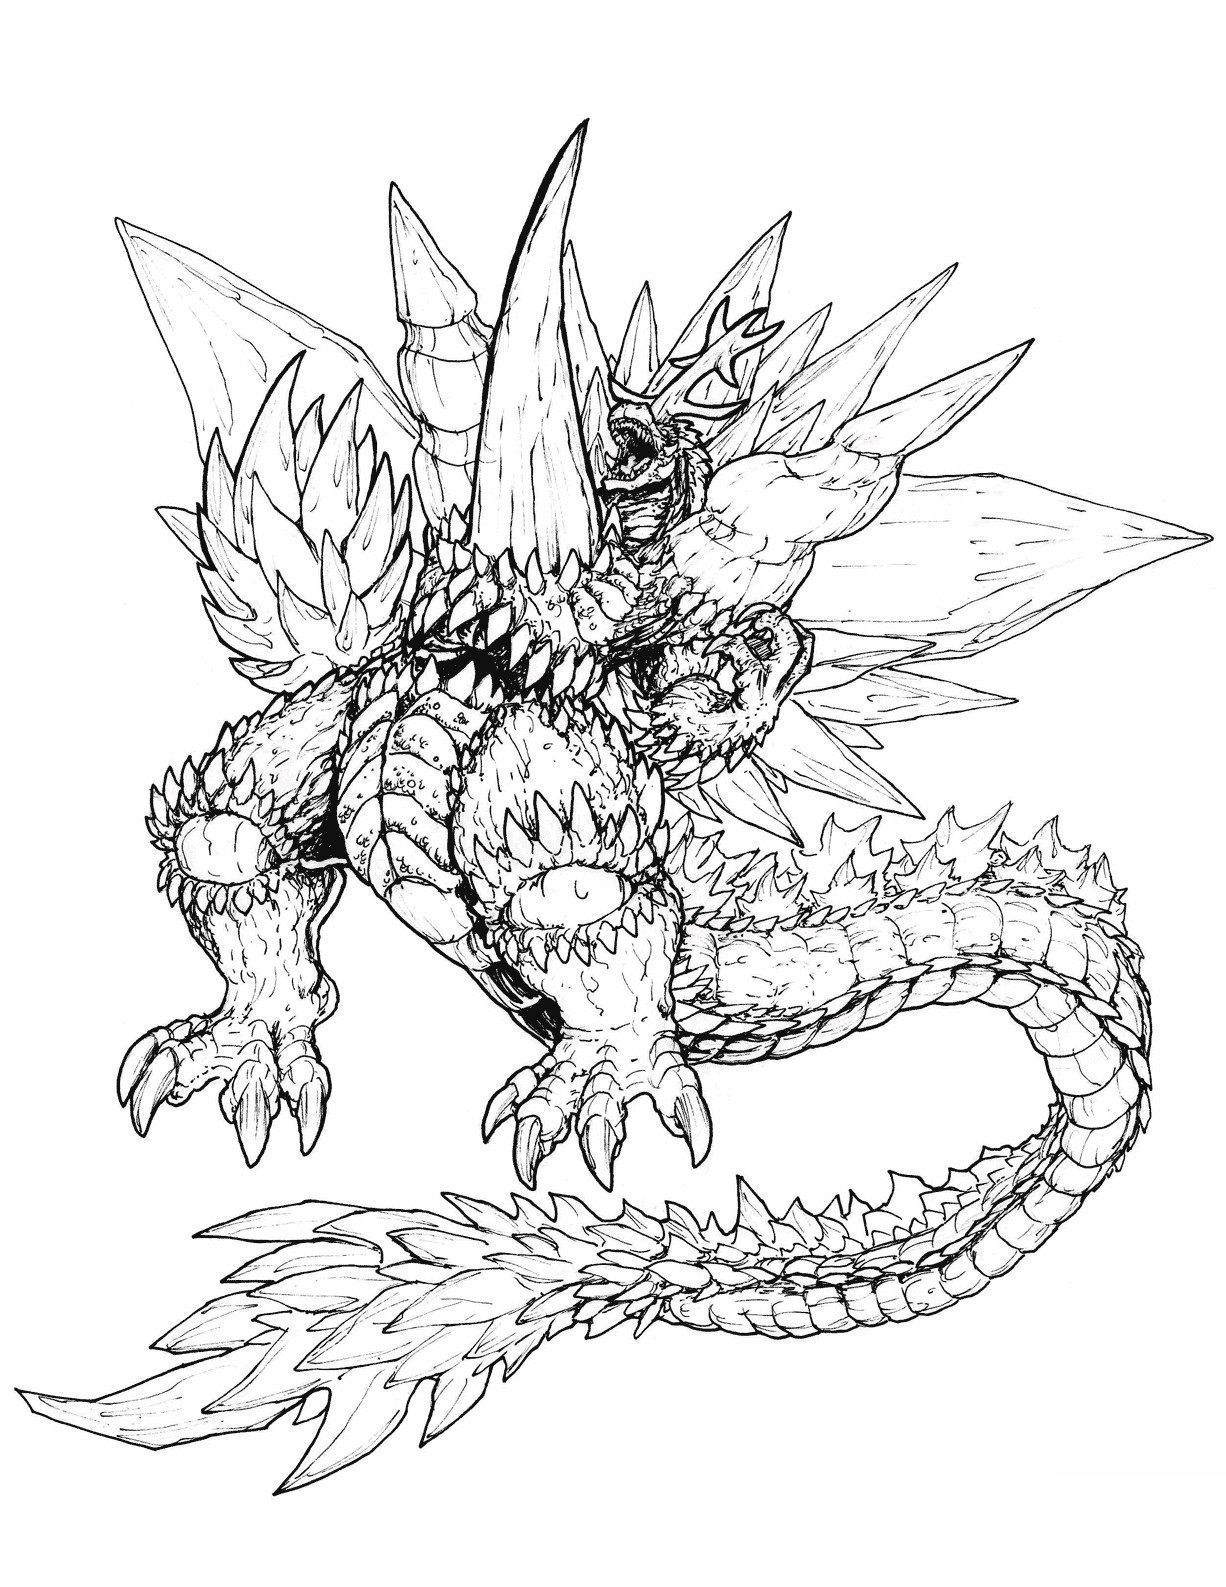 Godzilla Coloring Pages Fresh Characters Best Of Games 402 - Free ...